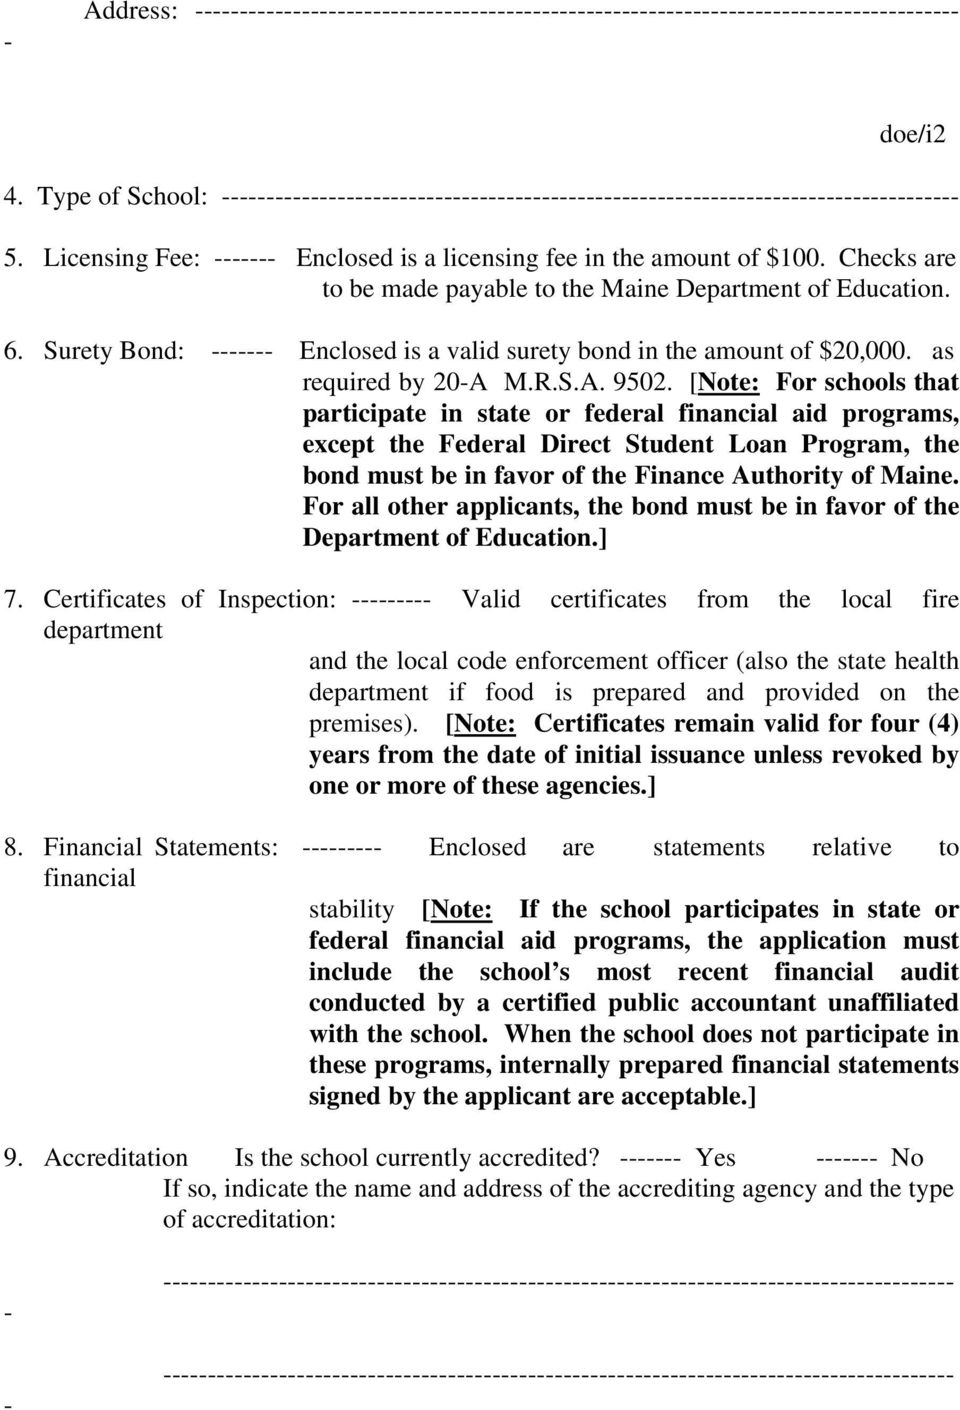 [Note: For schools that participate in state or federal financial aid programs, except the Federal Direct Student Loan Program, the bond must be in favor of the Finance Authority of Maine.